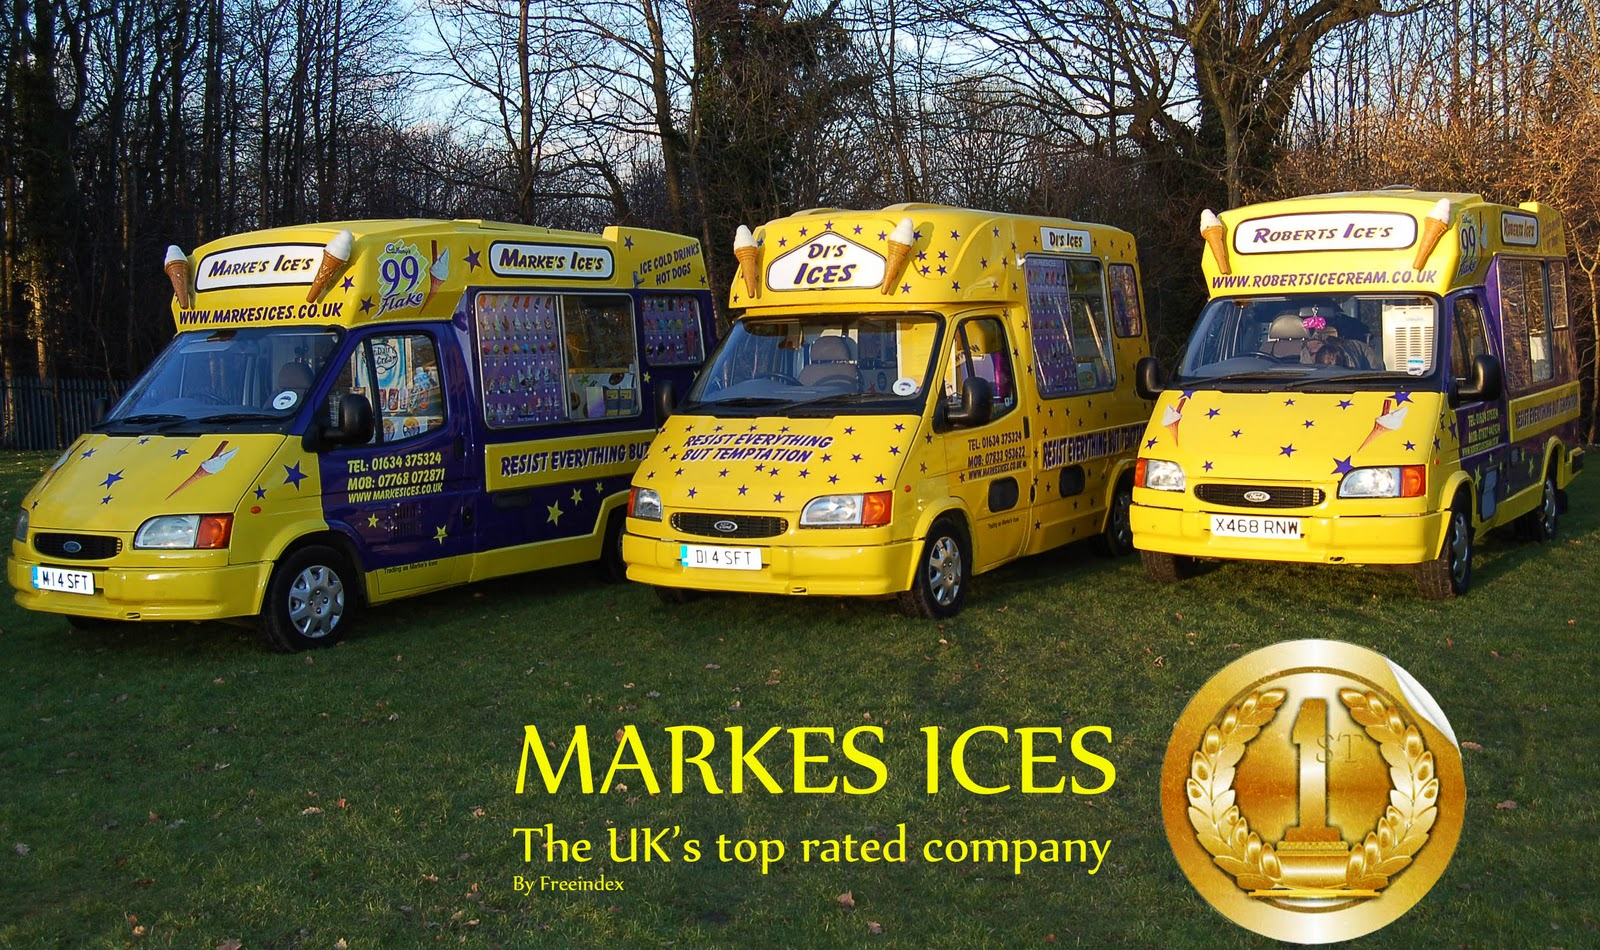 http://1.bp.blogspot.com/_cK_UI1EYZ2s/TPZQVoyGqgI/AAAAAAAAAHk/AKfP7lVPb3Q/s1600/Ice+cream+van+hire+UK+top+rated.jpg